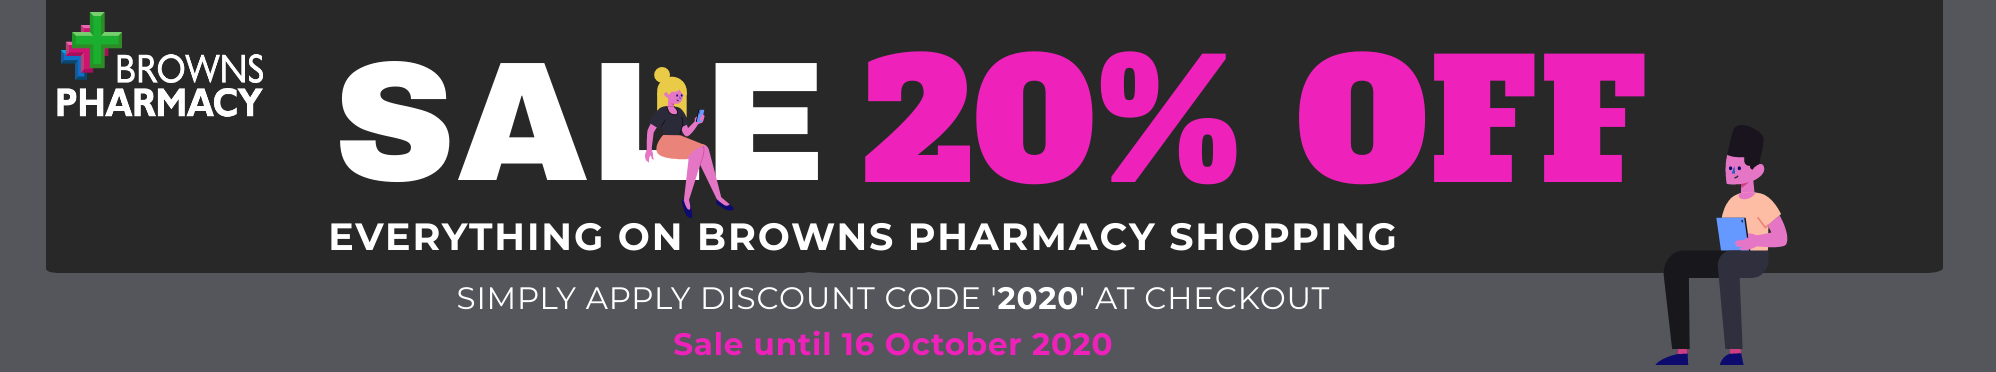 Sale 20% on all browns pharmacy shopping